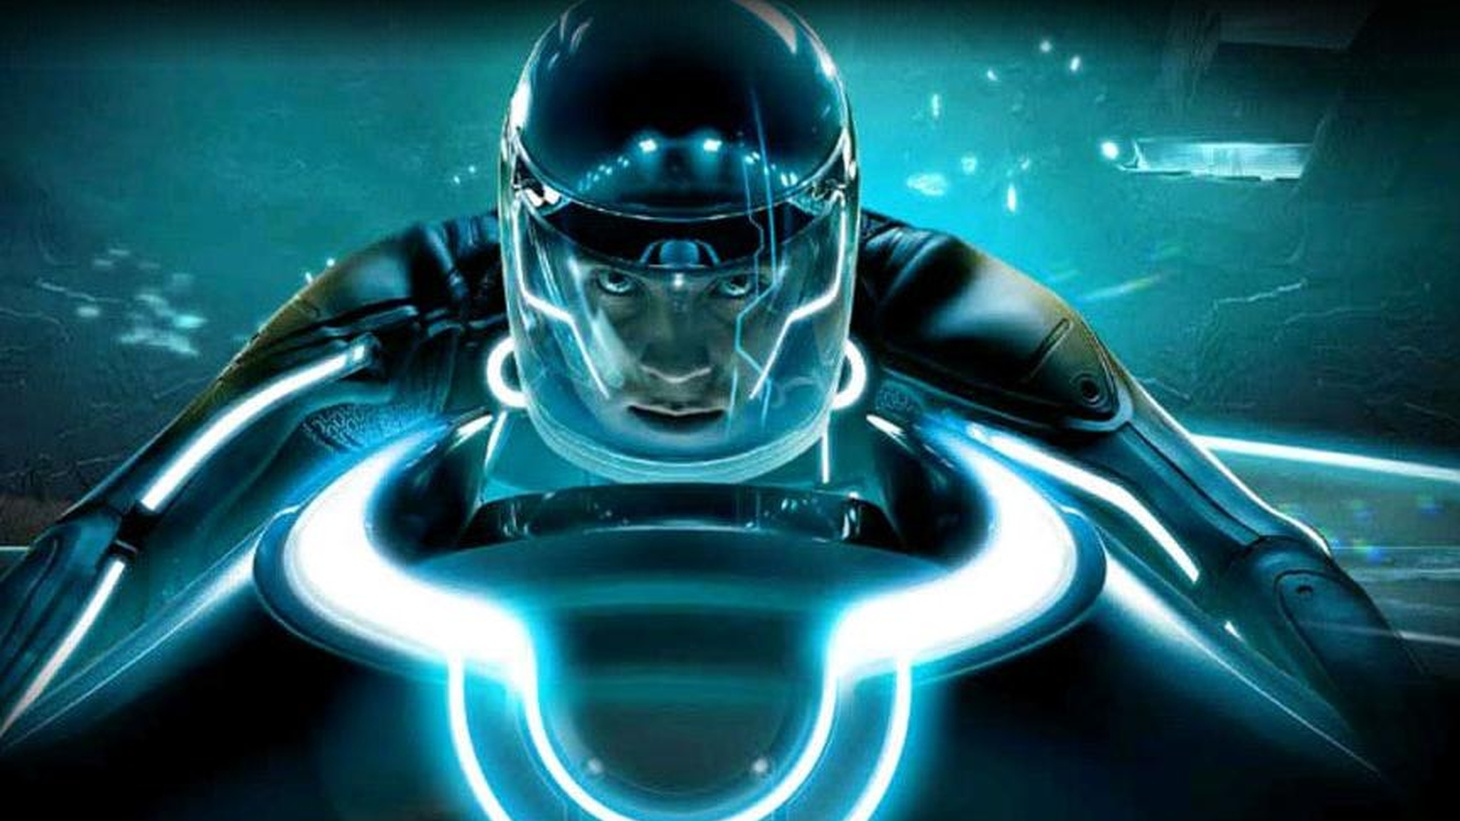 Breathes there is a movie with soul so dead as TRON: Legacy? Well, Speed Racer lumbers to mind...